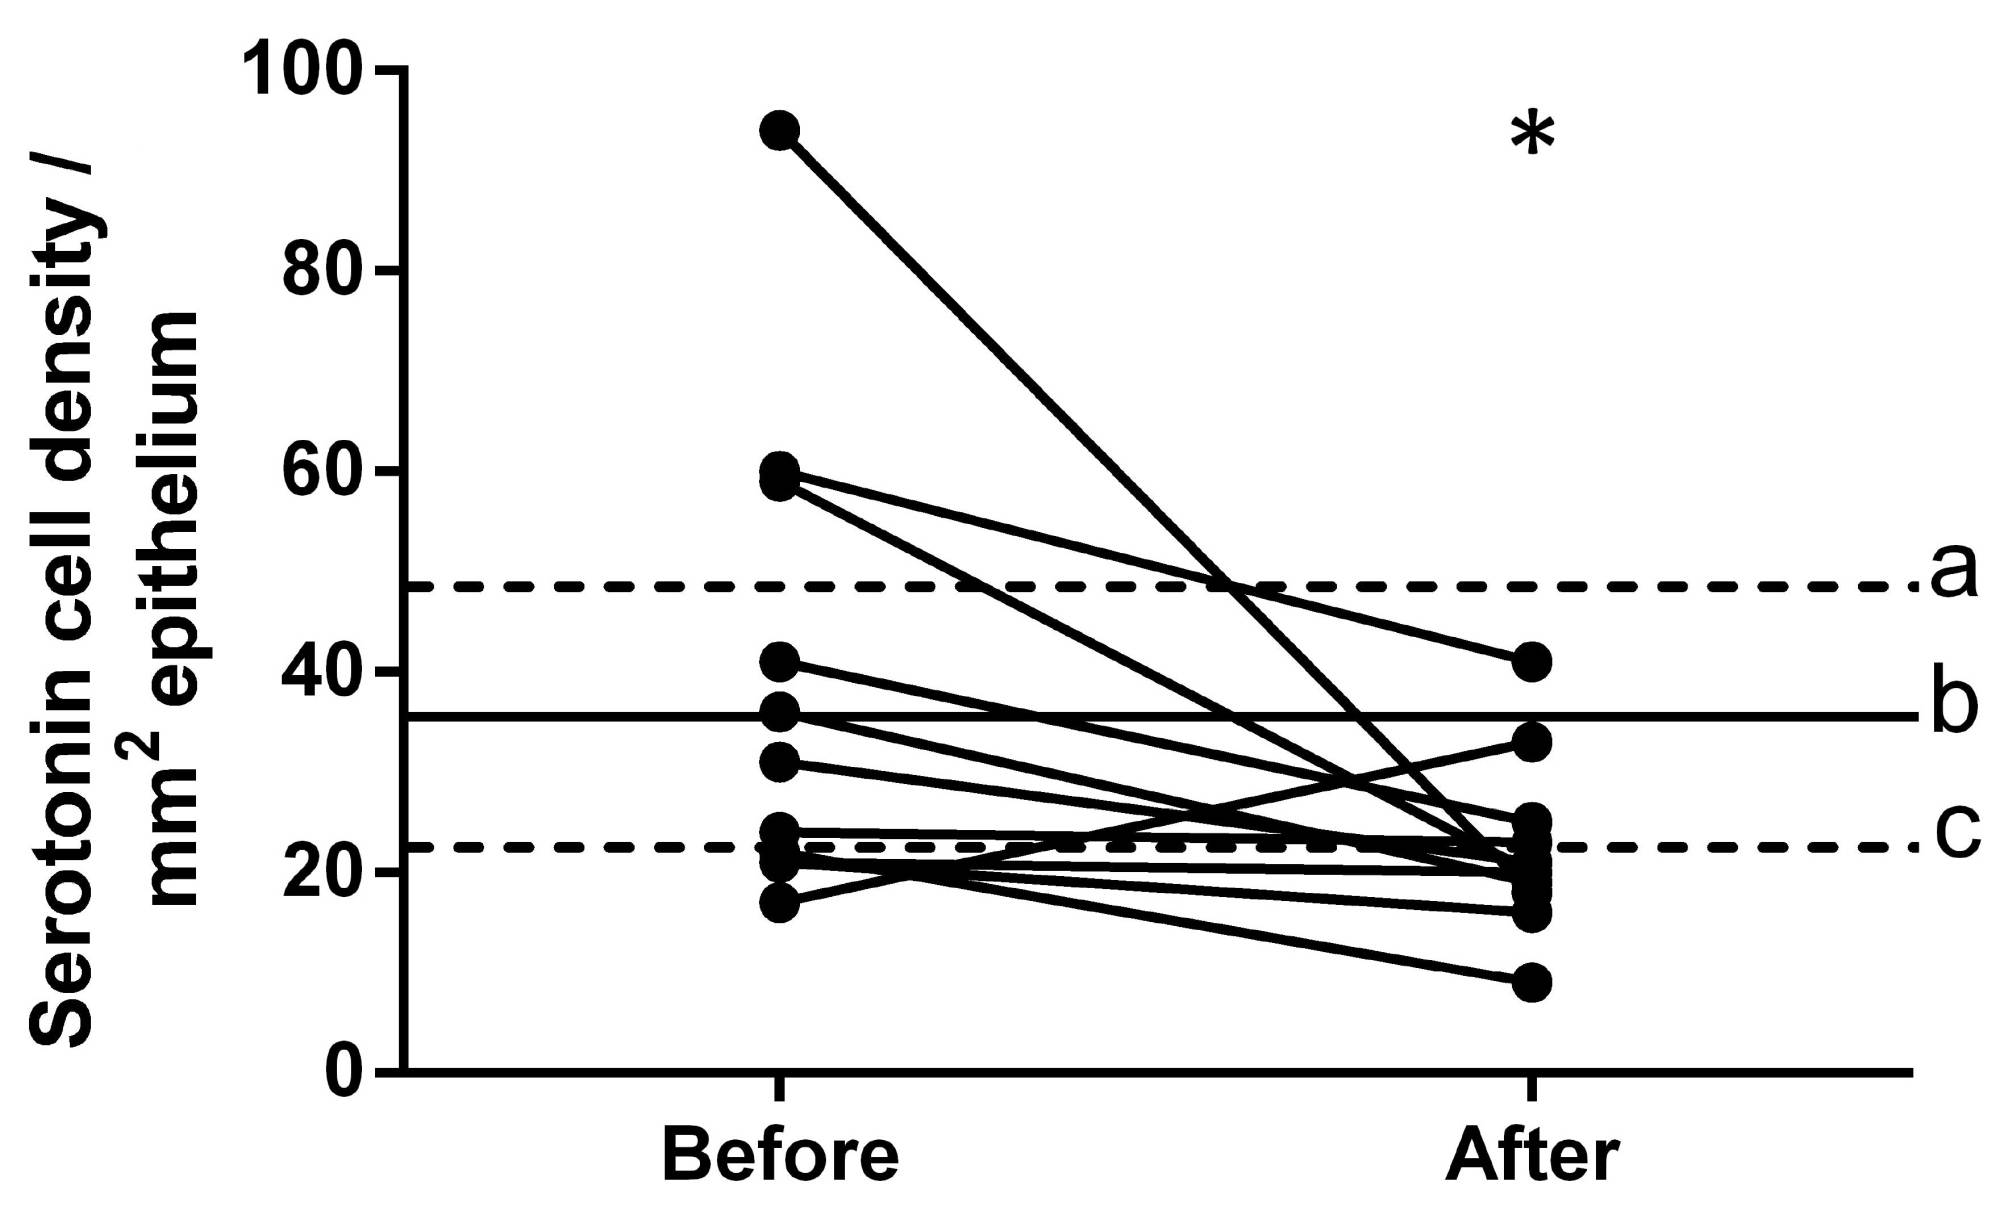 hight resolution of densities of serotonin immunoreactive cells in the ileum of patients with ibs prior to and following dietary guidance the dashed lines labeled a and c